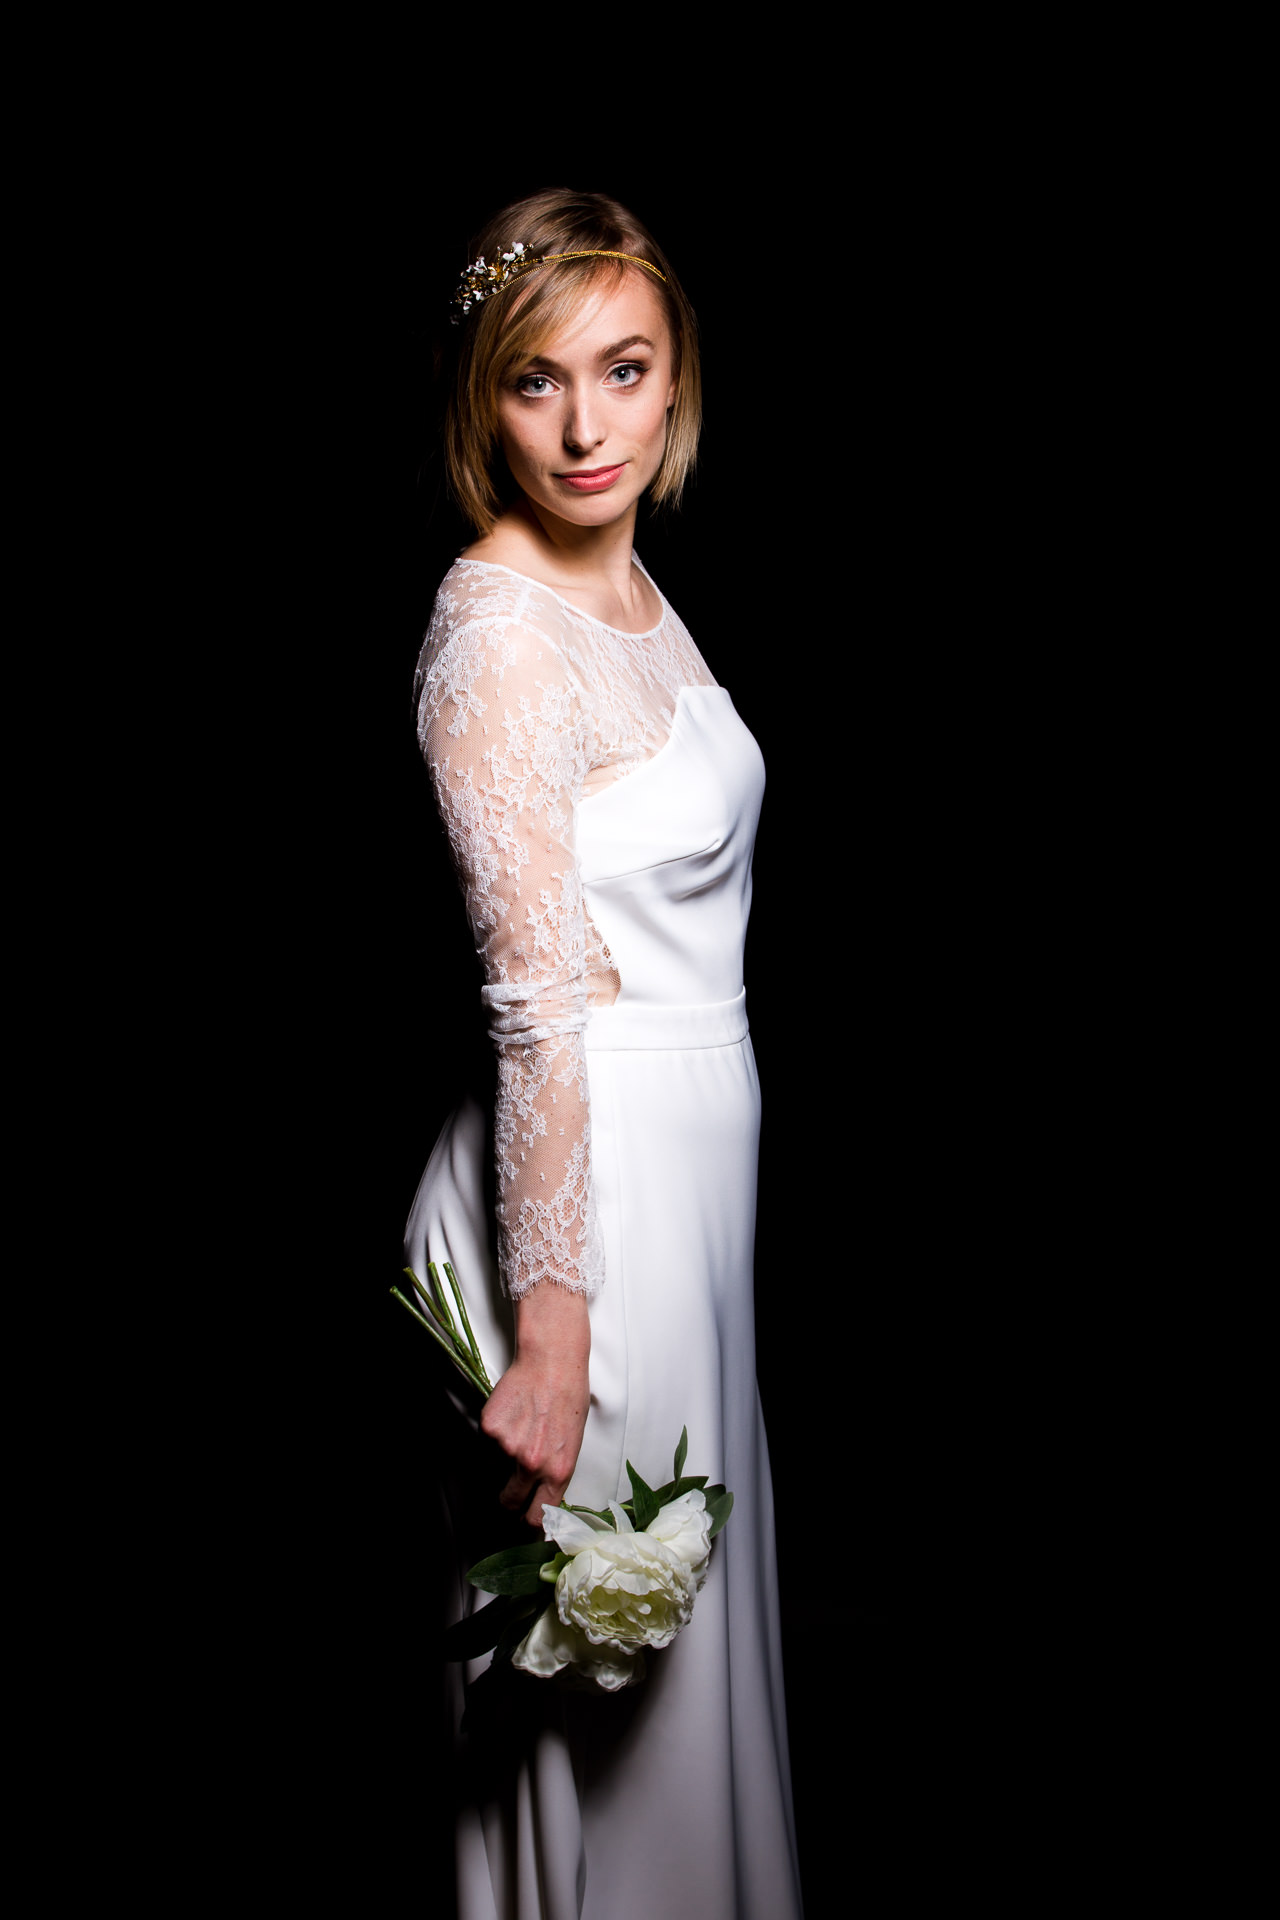 Laura ⎥Splendide Wedding, photographe mariage val-de-marne